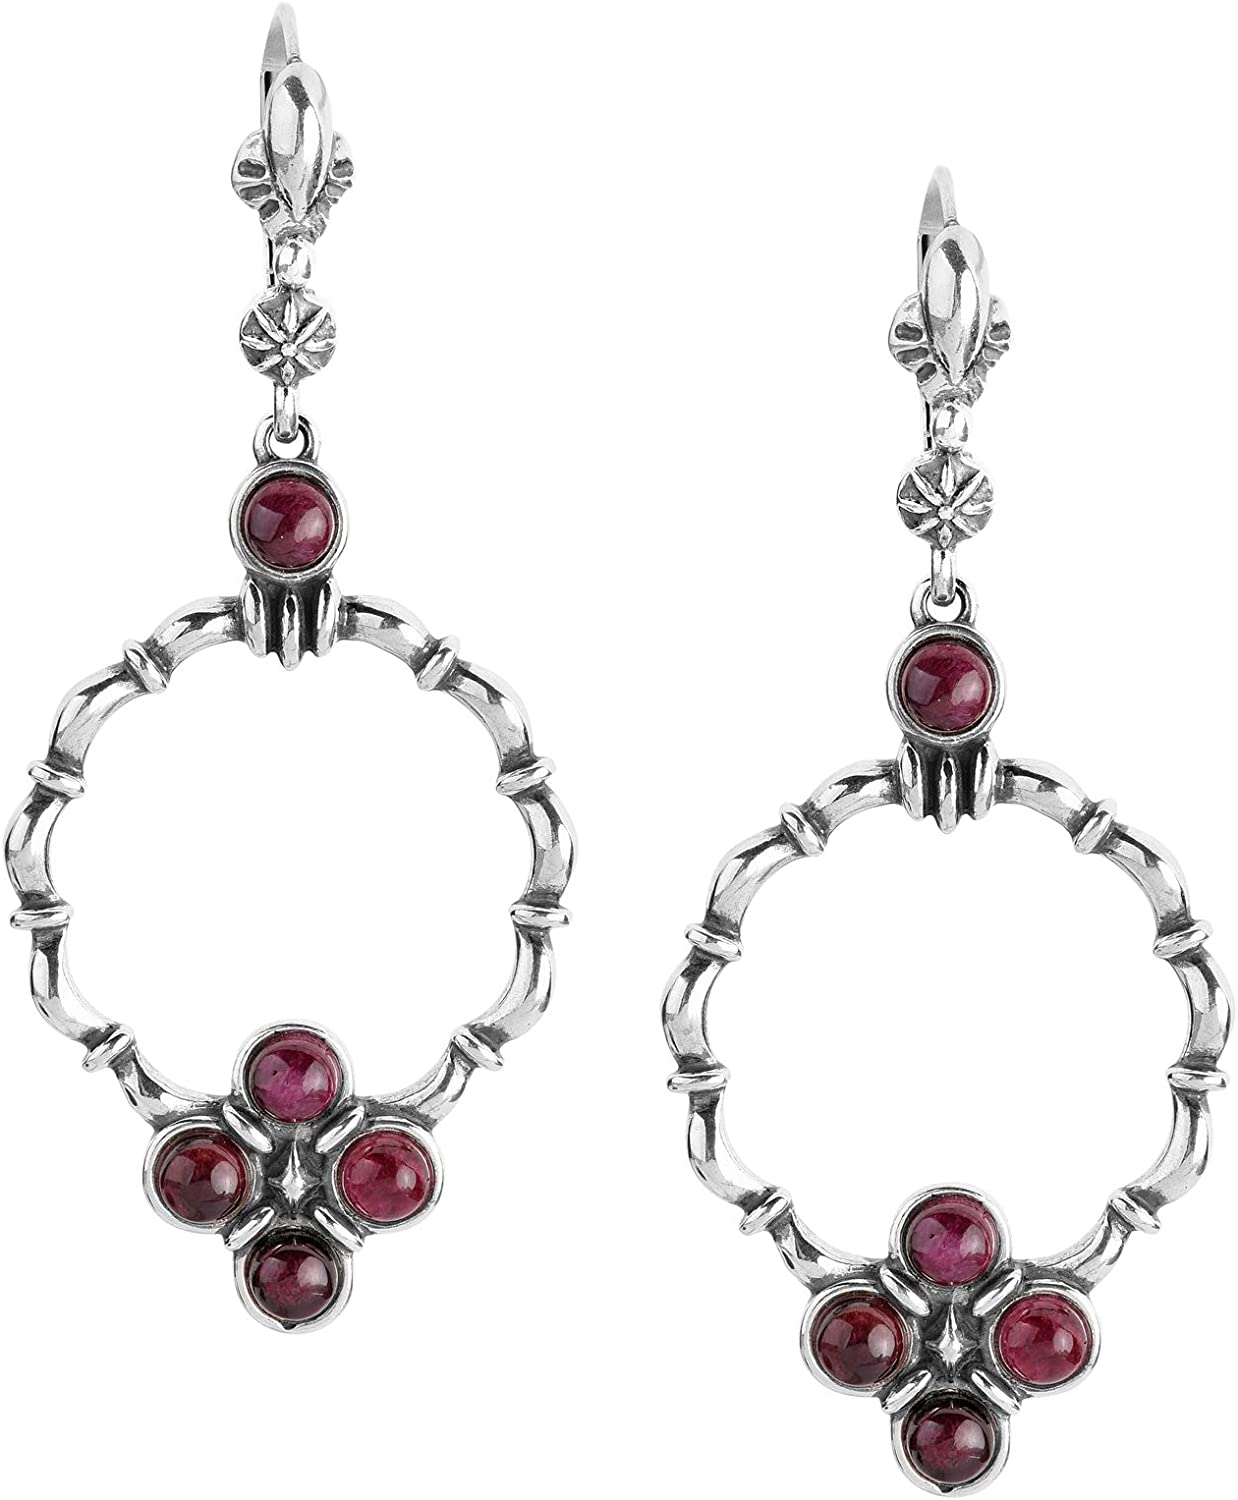 American Genuine Free Shipping West Sterling Silver outlet Gemstone Dangle Earrings